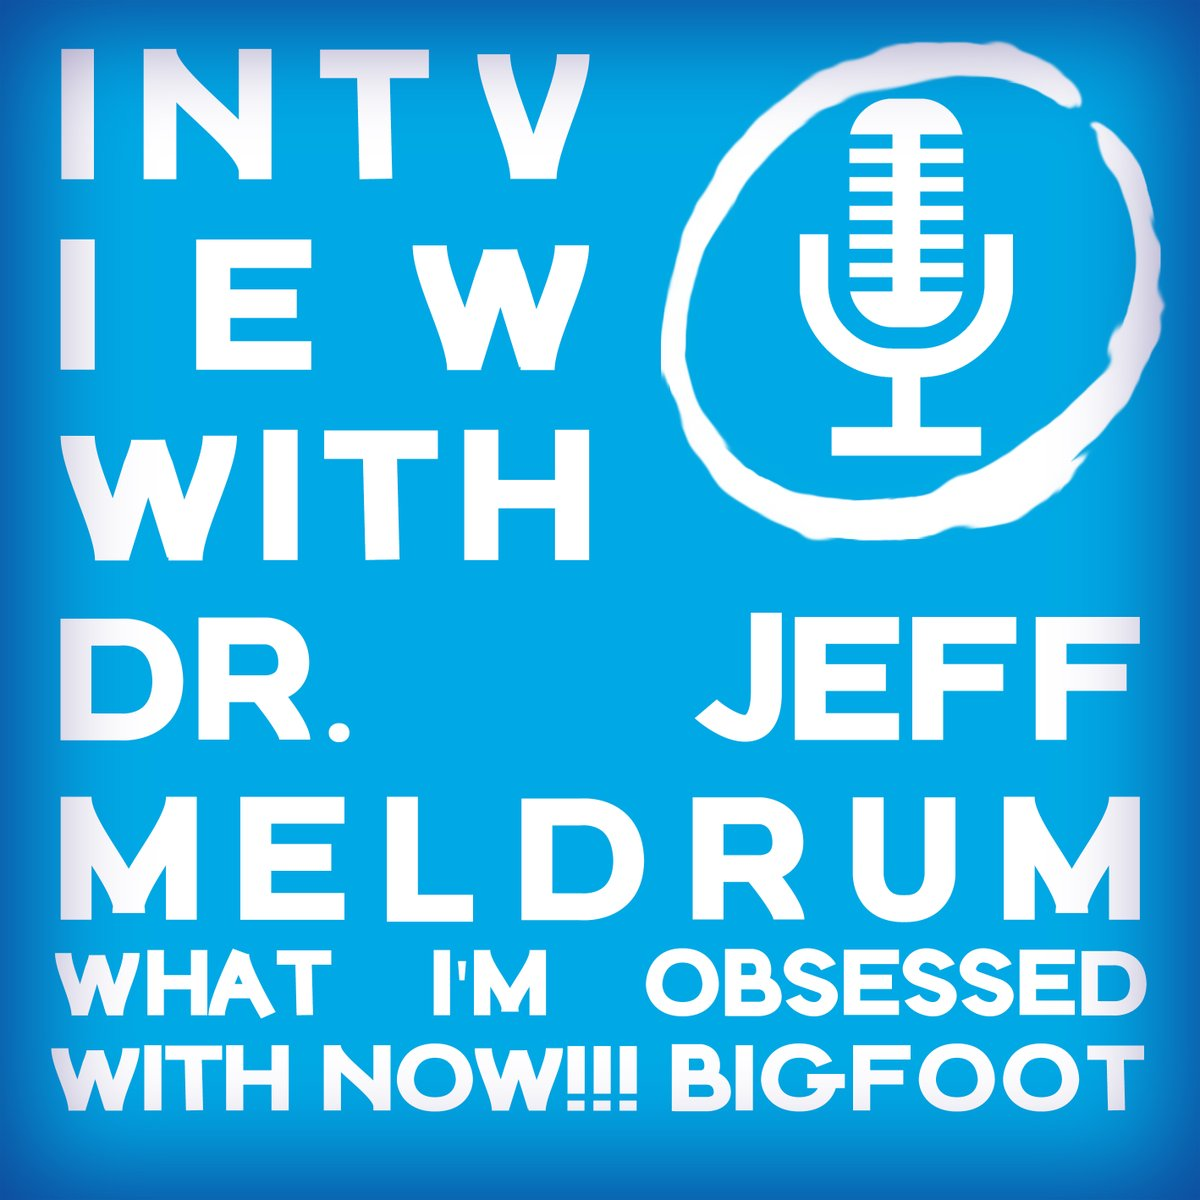 Dr Meldrum is Prof. of Anatomy and Anthropology and Bigfoot expert. Check out the Bigfoot conversation. #podcast #podcasting #podcasts #podcastlife #podcasters #podcastshow #bigfoot #bigfootsighting #bigfootdecoys #bigfootisreal #bigfootcountry #bigfootsightings #bigfootstories https://t.co/pMQ4IfZW5V